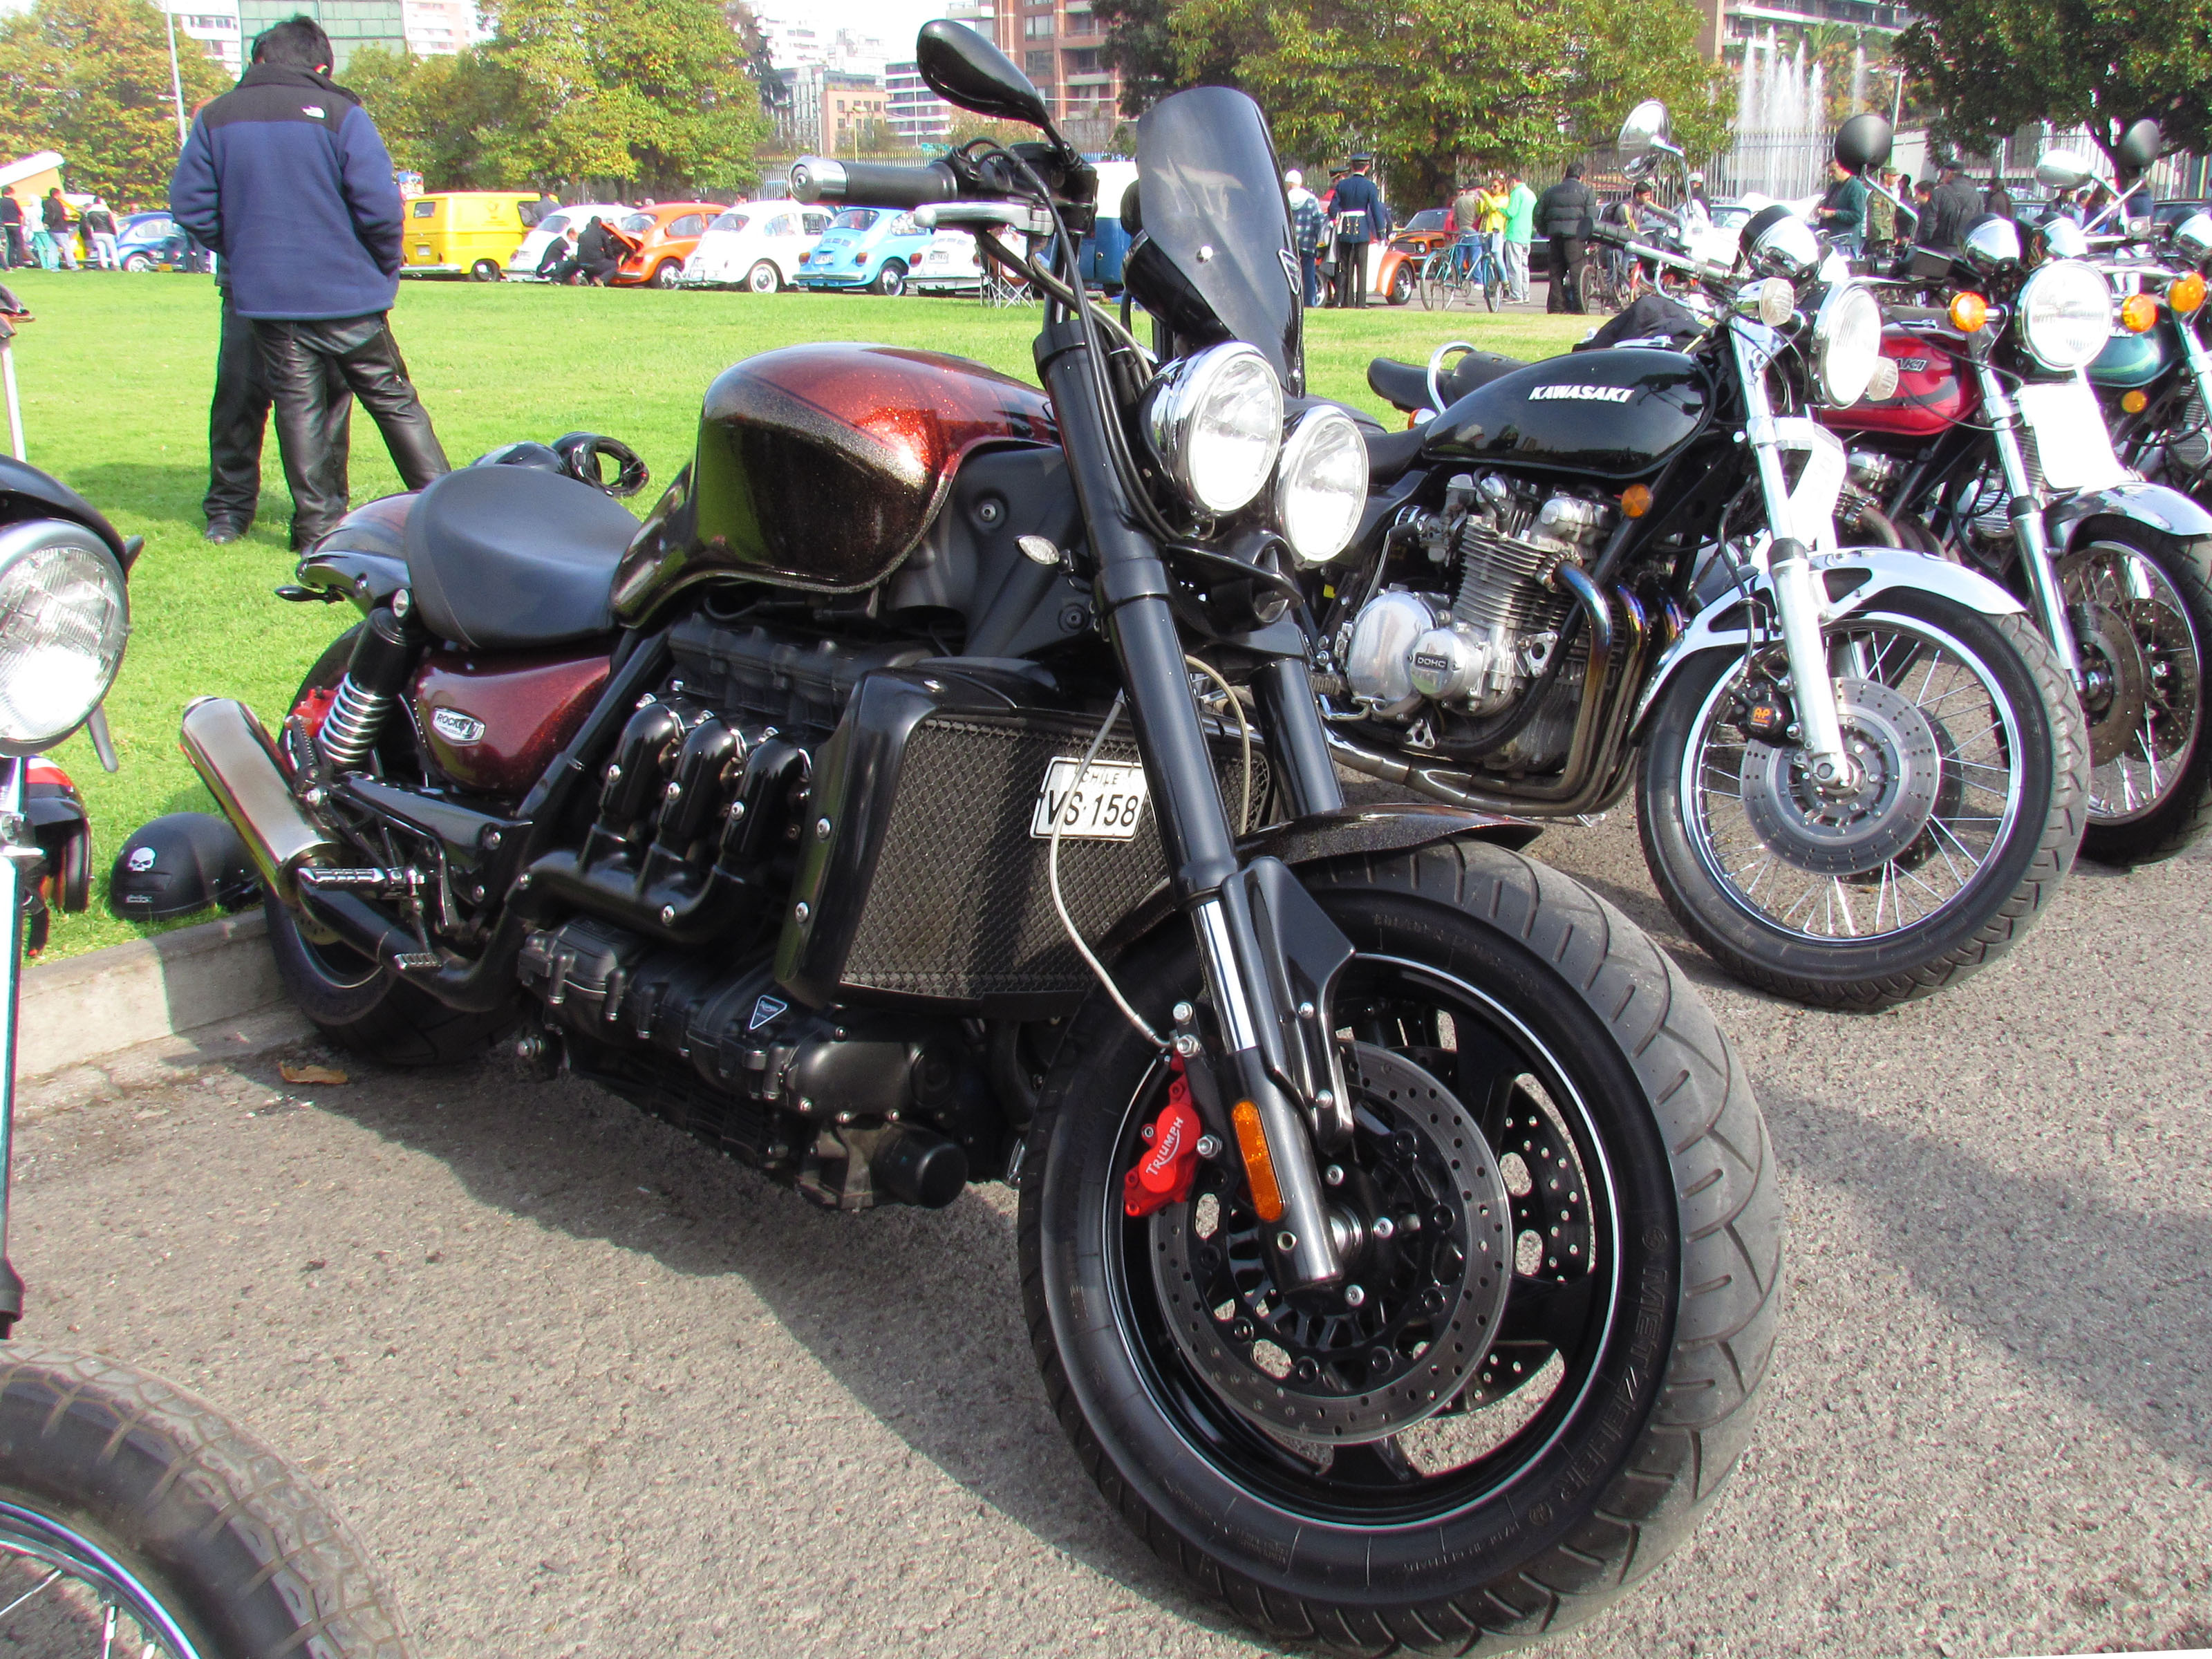 Filetriumph Rocket Iii 2300 2010 14130108740jpg Wikimedia Commons